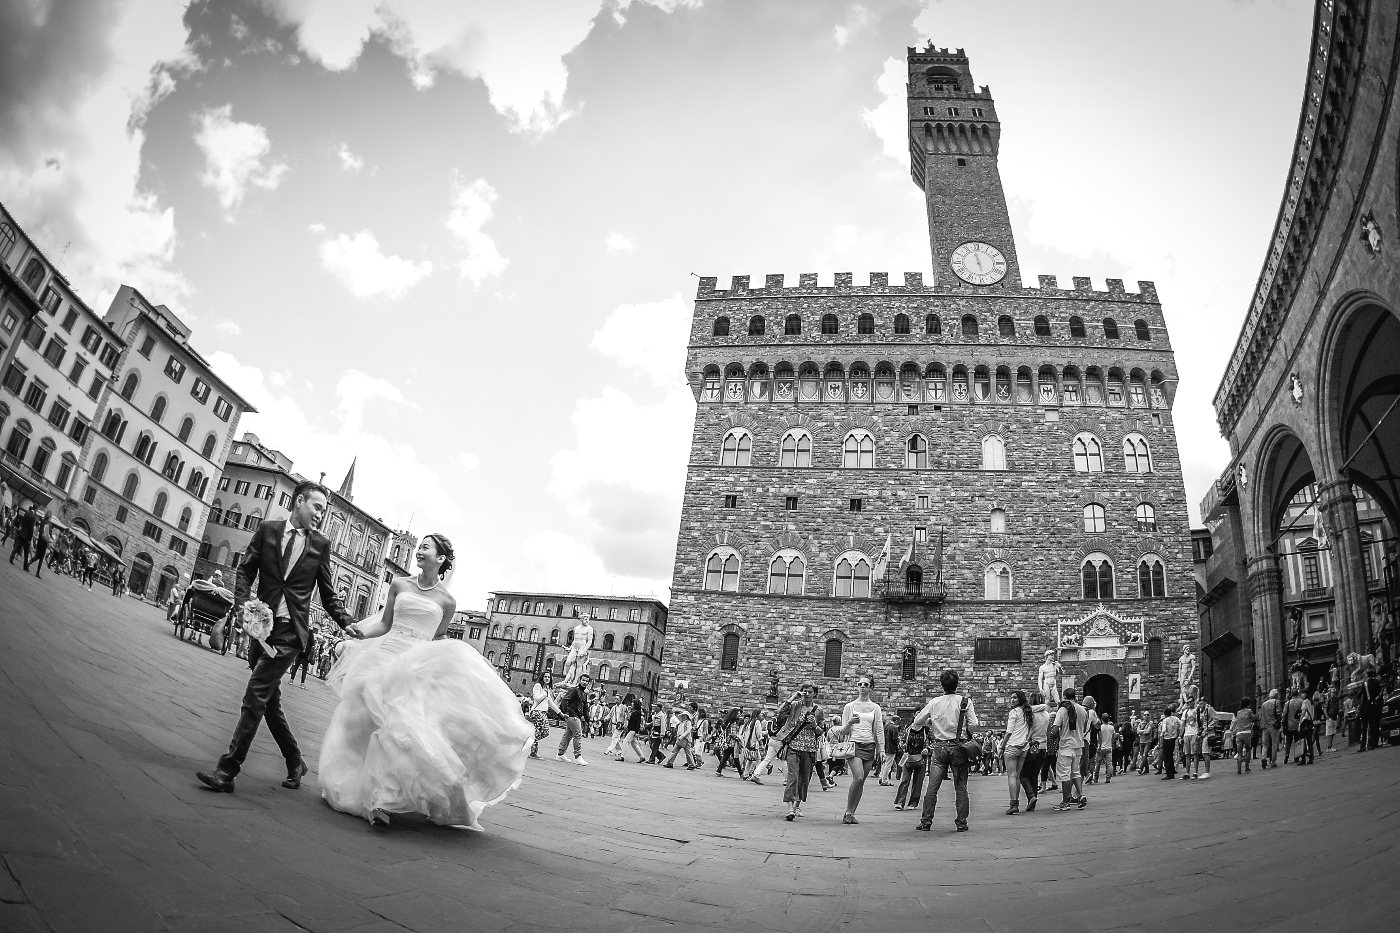 wedding photo tuscany_13.jpg